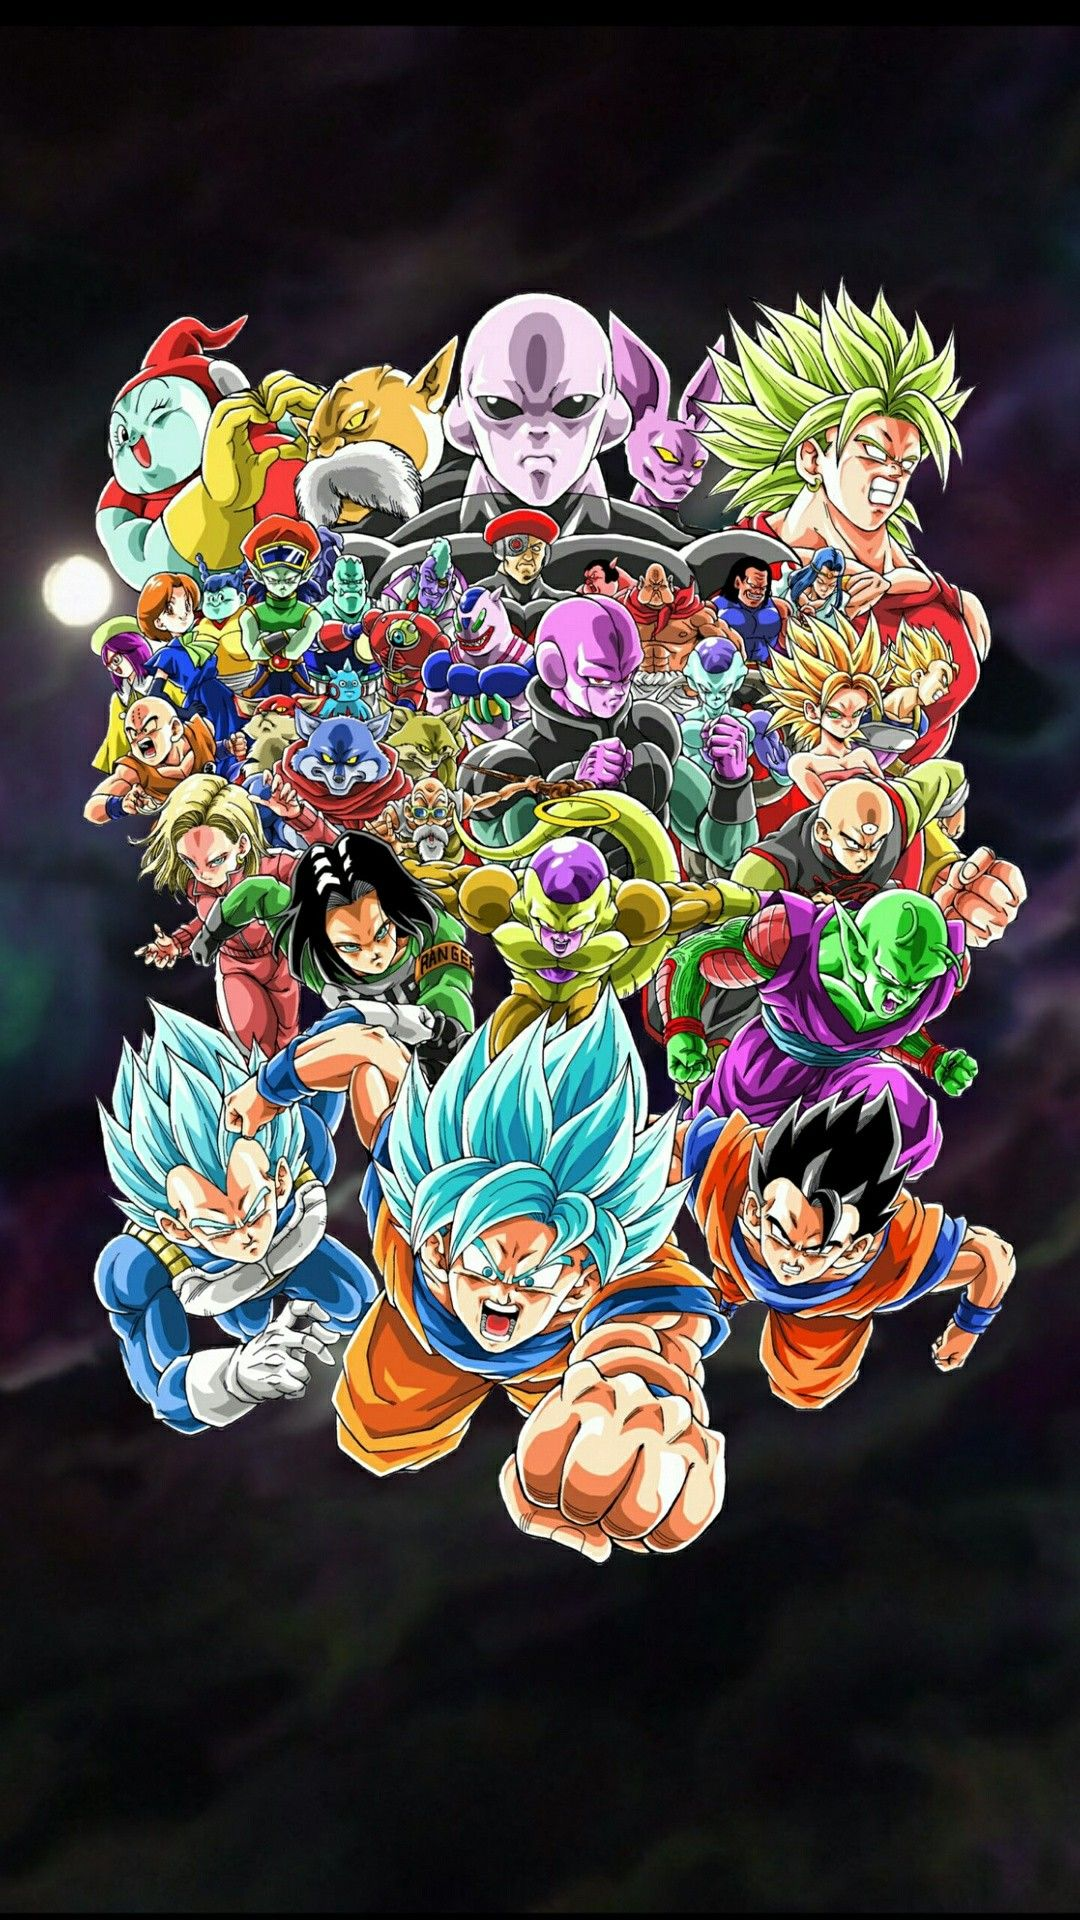 Torneo Del Poder Dragón Ball Super Dragon Ball Super Pinterest